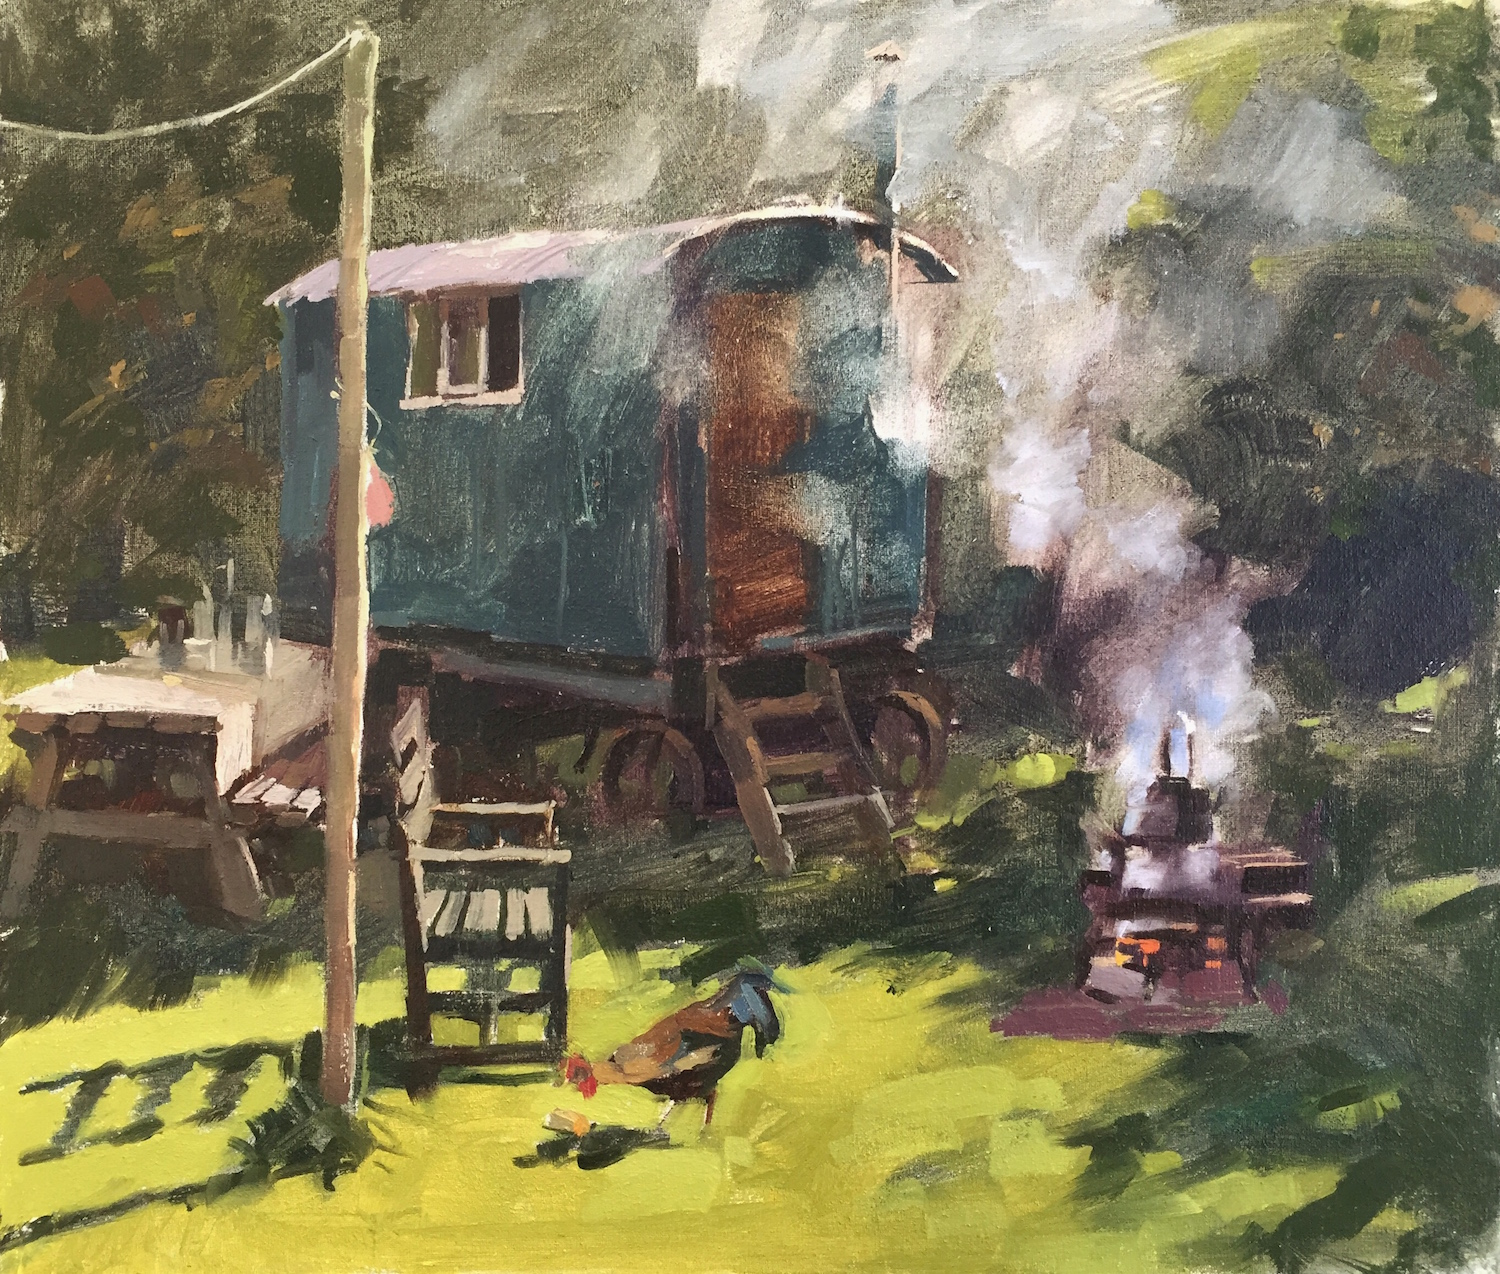 Shepherds hut and smoke - Haidee-Jo Summers - Oil on canvas